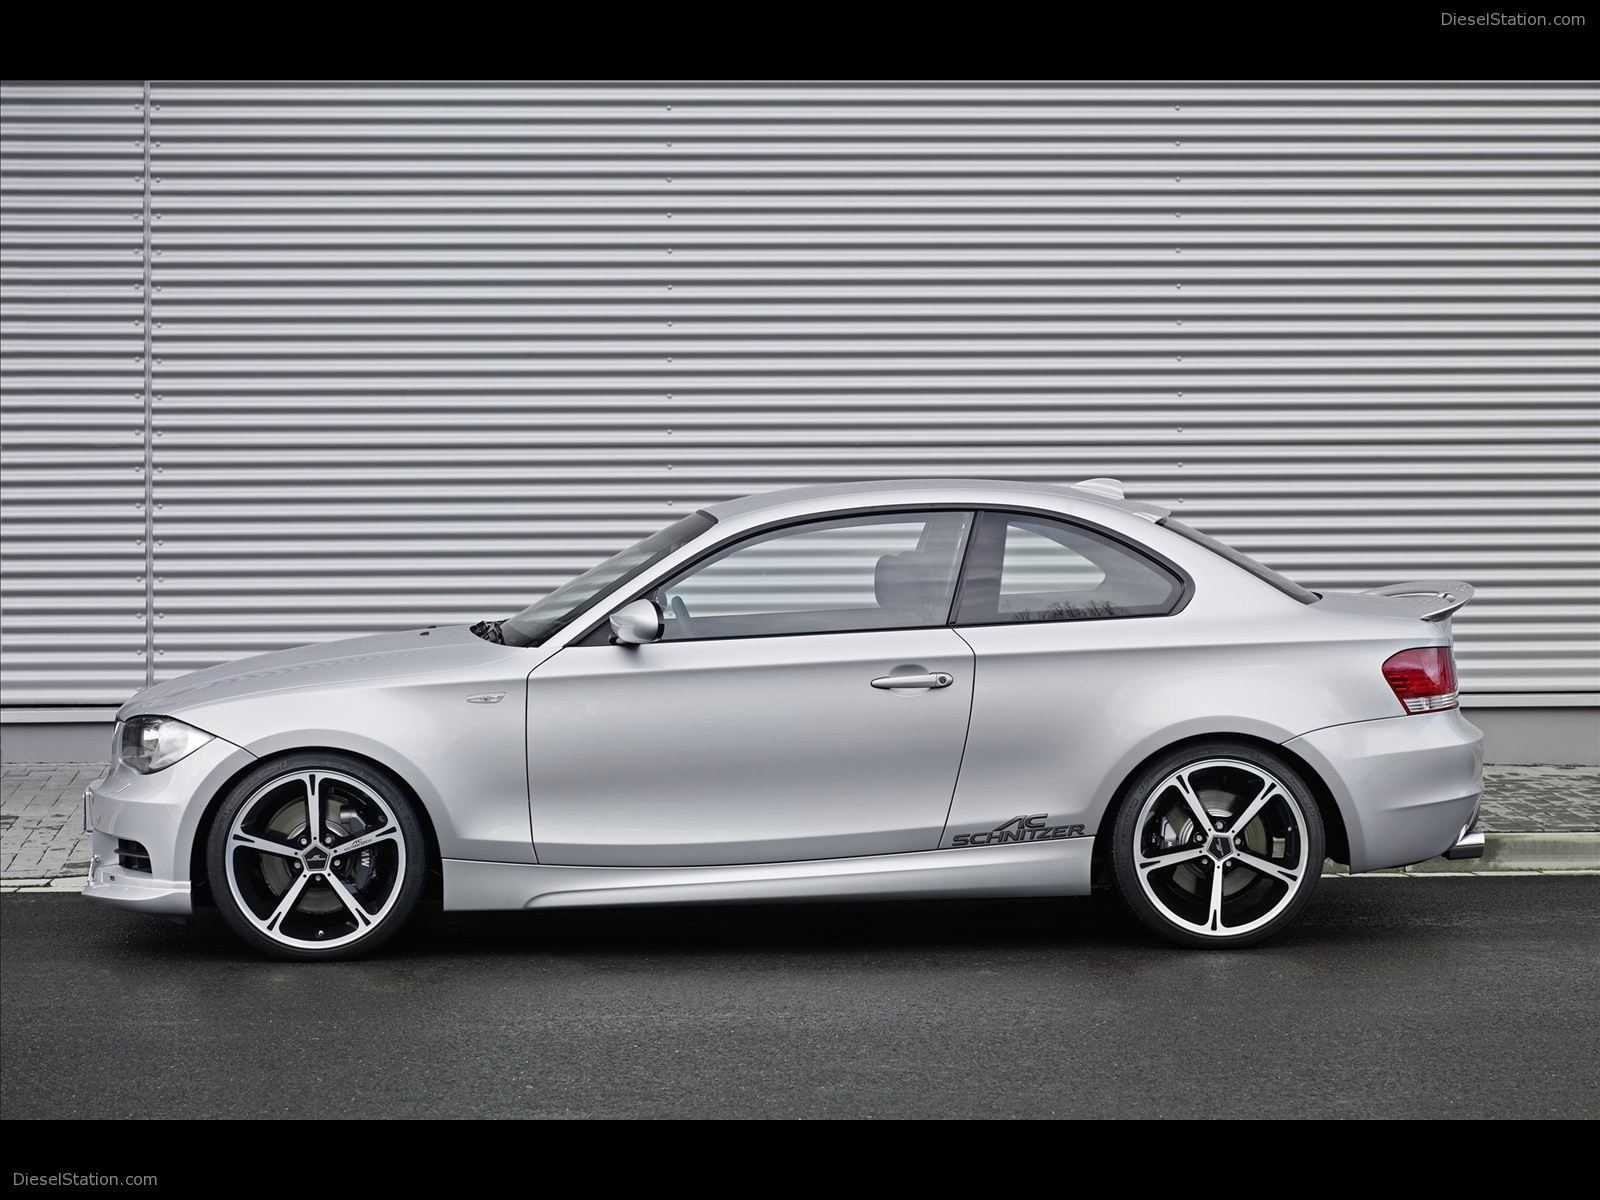 bmw 1er m coupe (e82) 2015 pictures #11